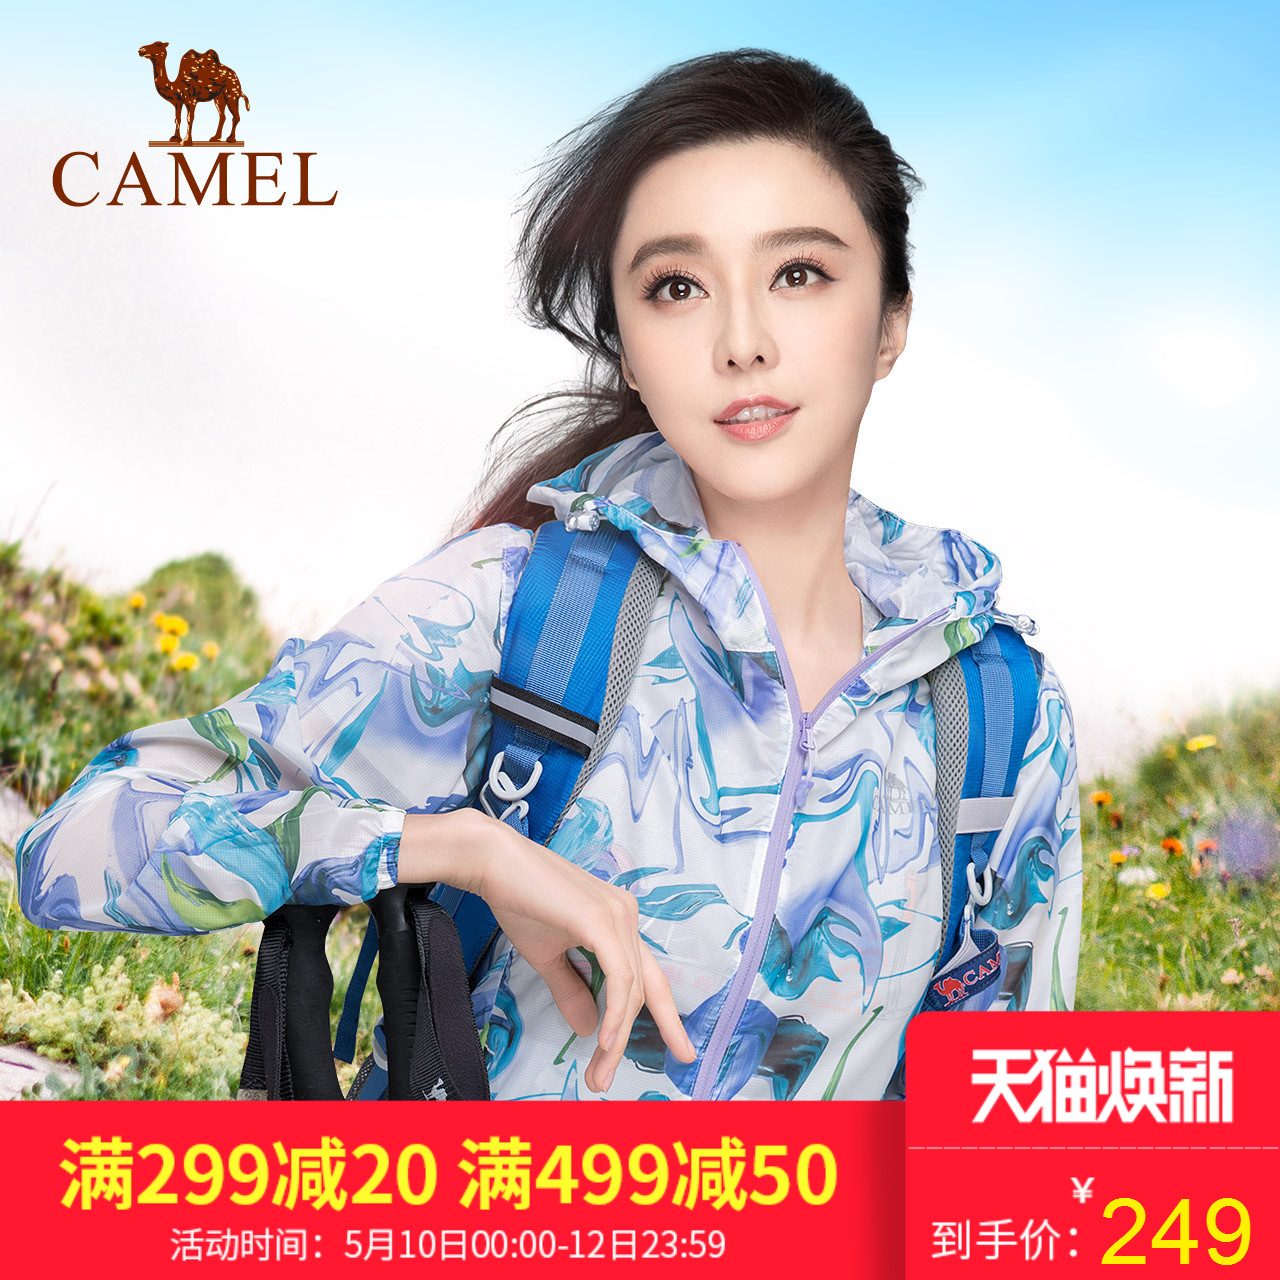 [Ice ice the same paragraph] camel outdoor skin clothing UV protection UPF40+ breathable light sunscreen clothes women